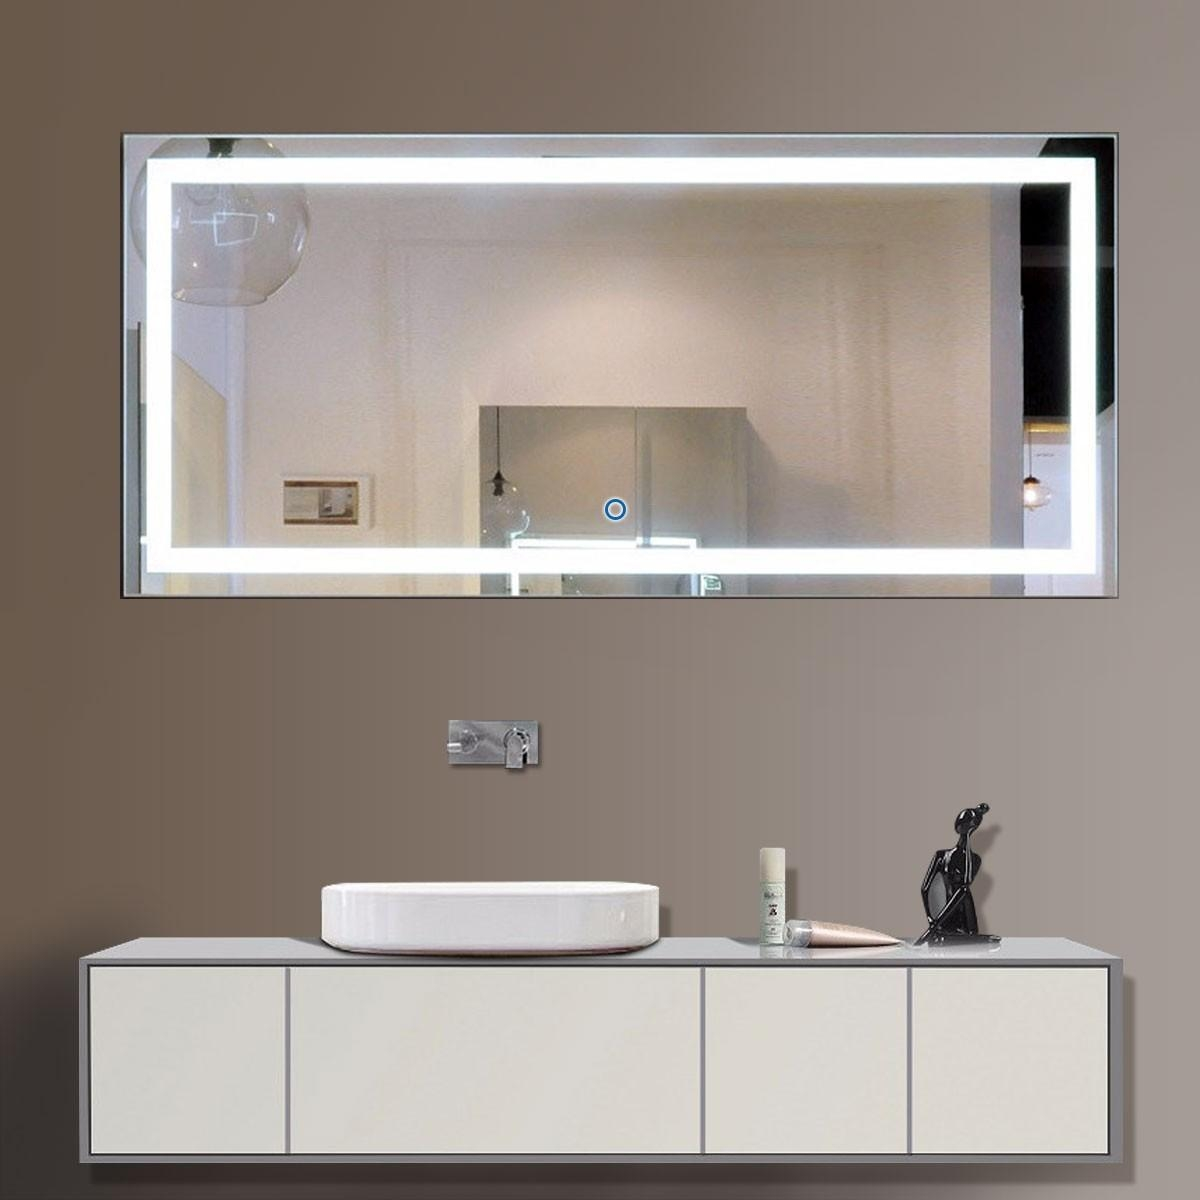 Buy Bathroom Led Lighted Mirrors, Backlit Mirrors | Decoraport Usa Throughout Led Lighted Mirrors (Image 8 of 20)